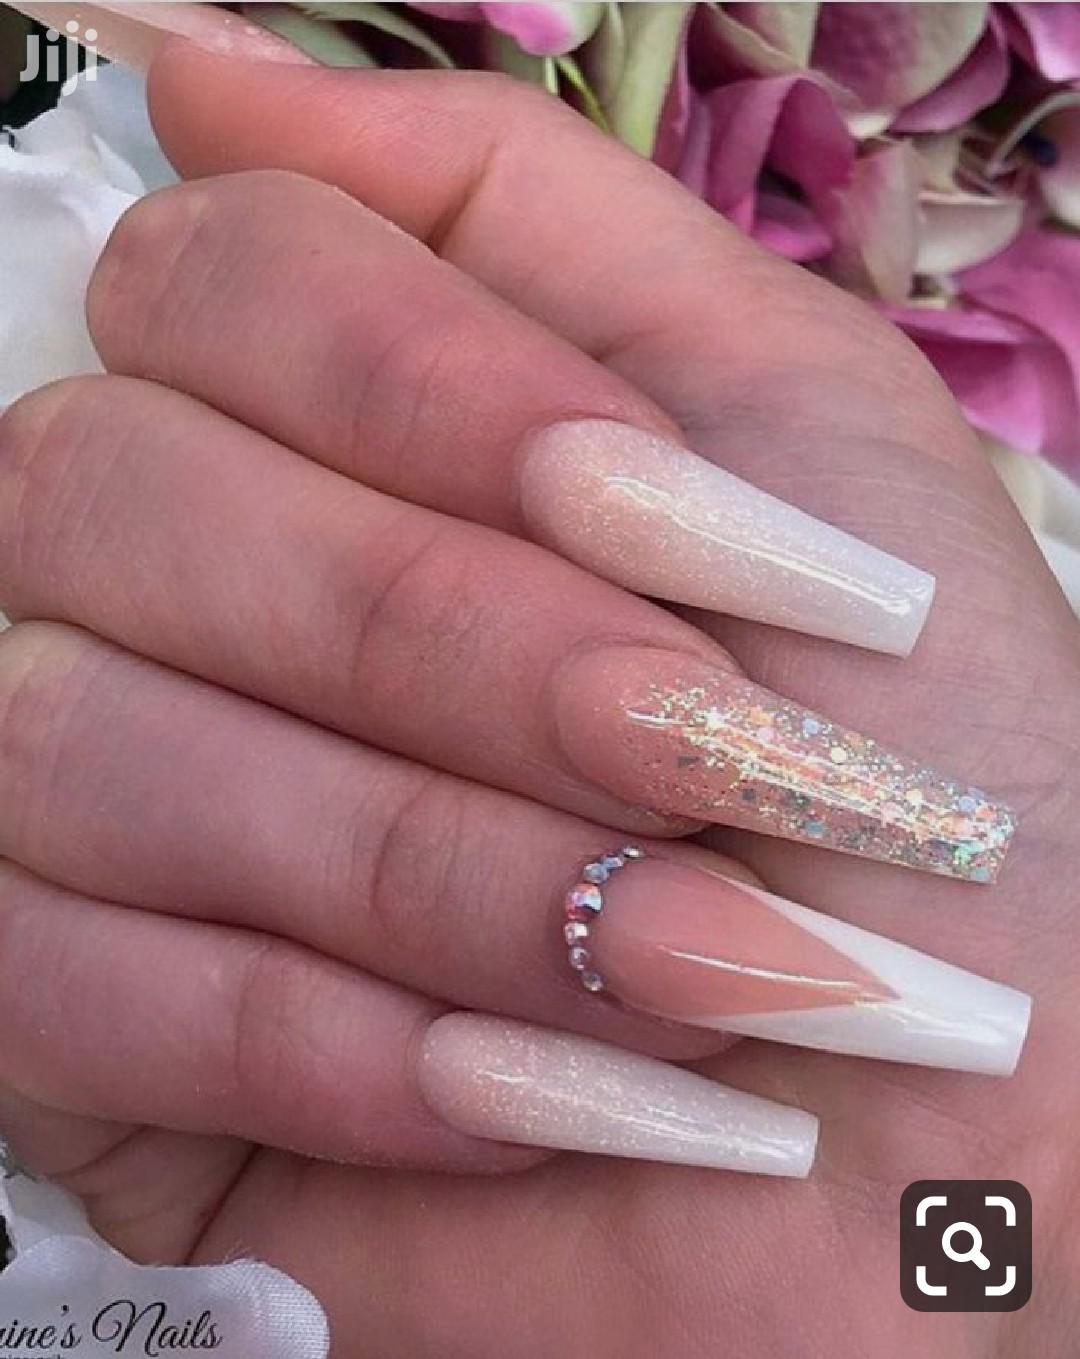 Professional Artificial Nails - False Nails | Tools & Accessories for sale in Nairobi Central, Nairobi, Kenya